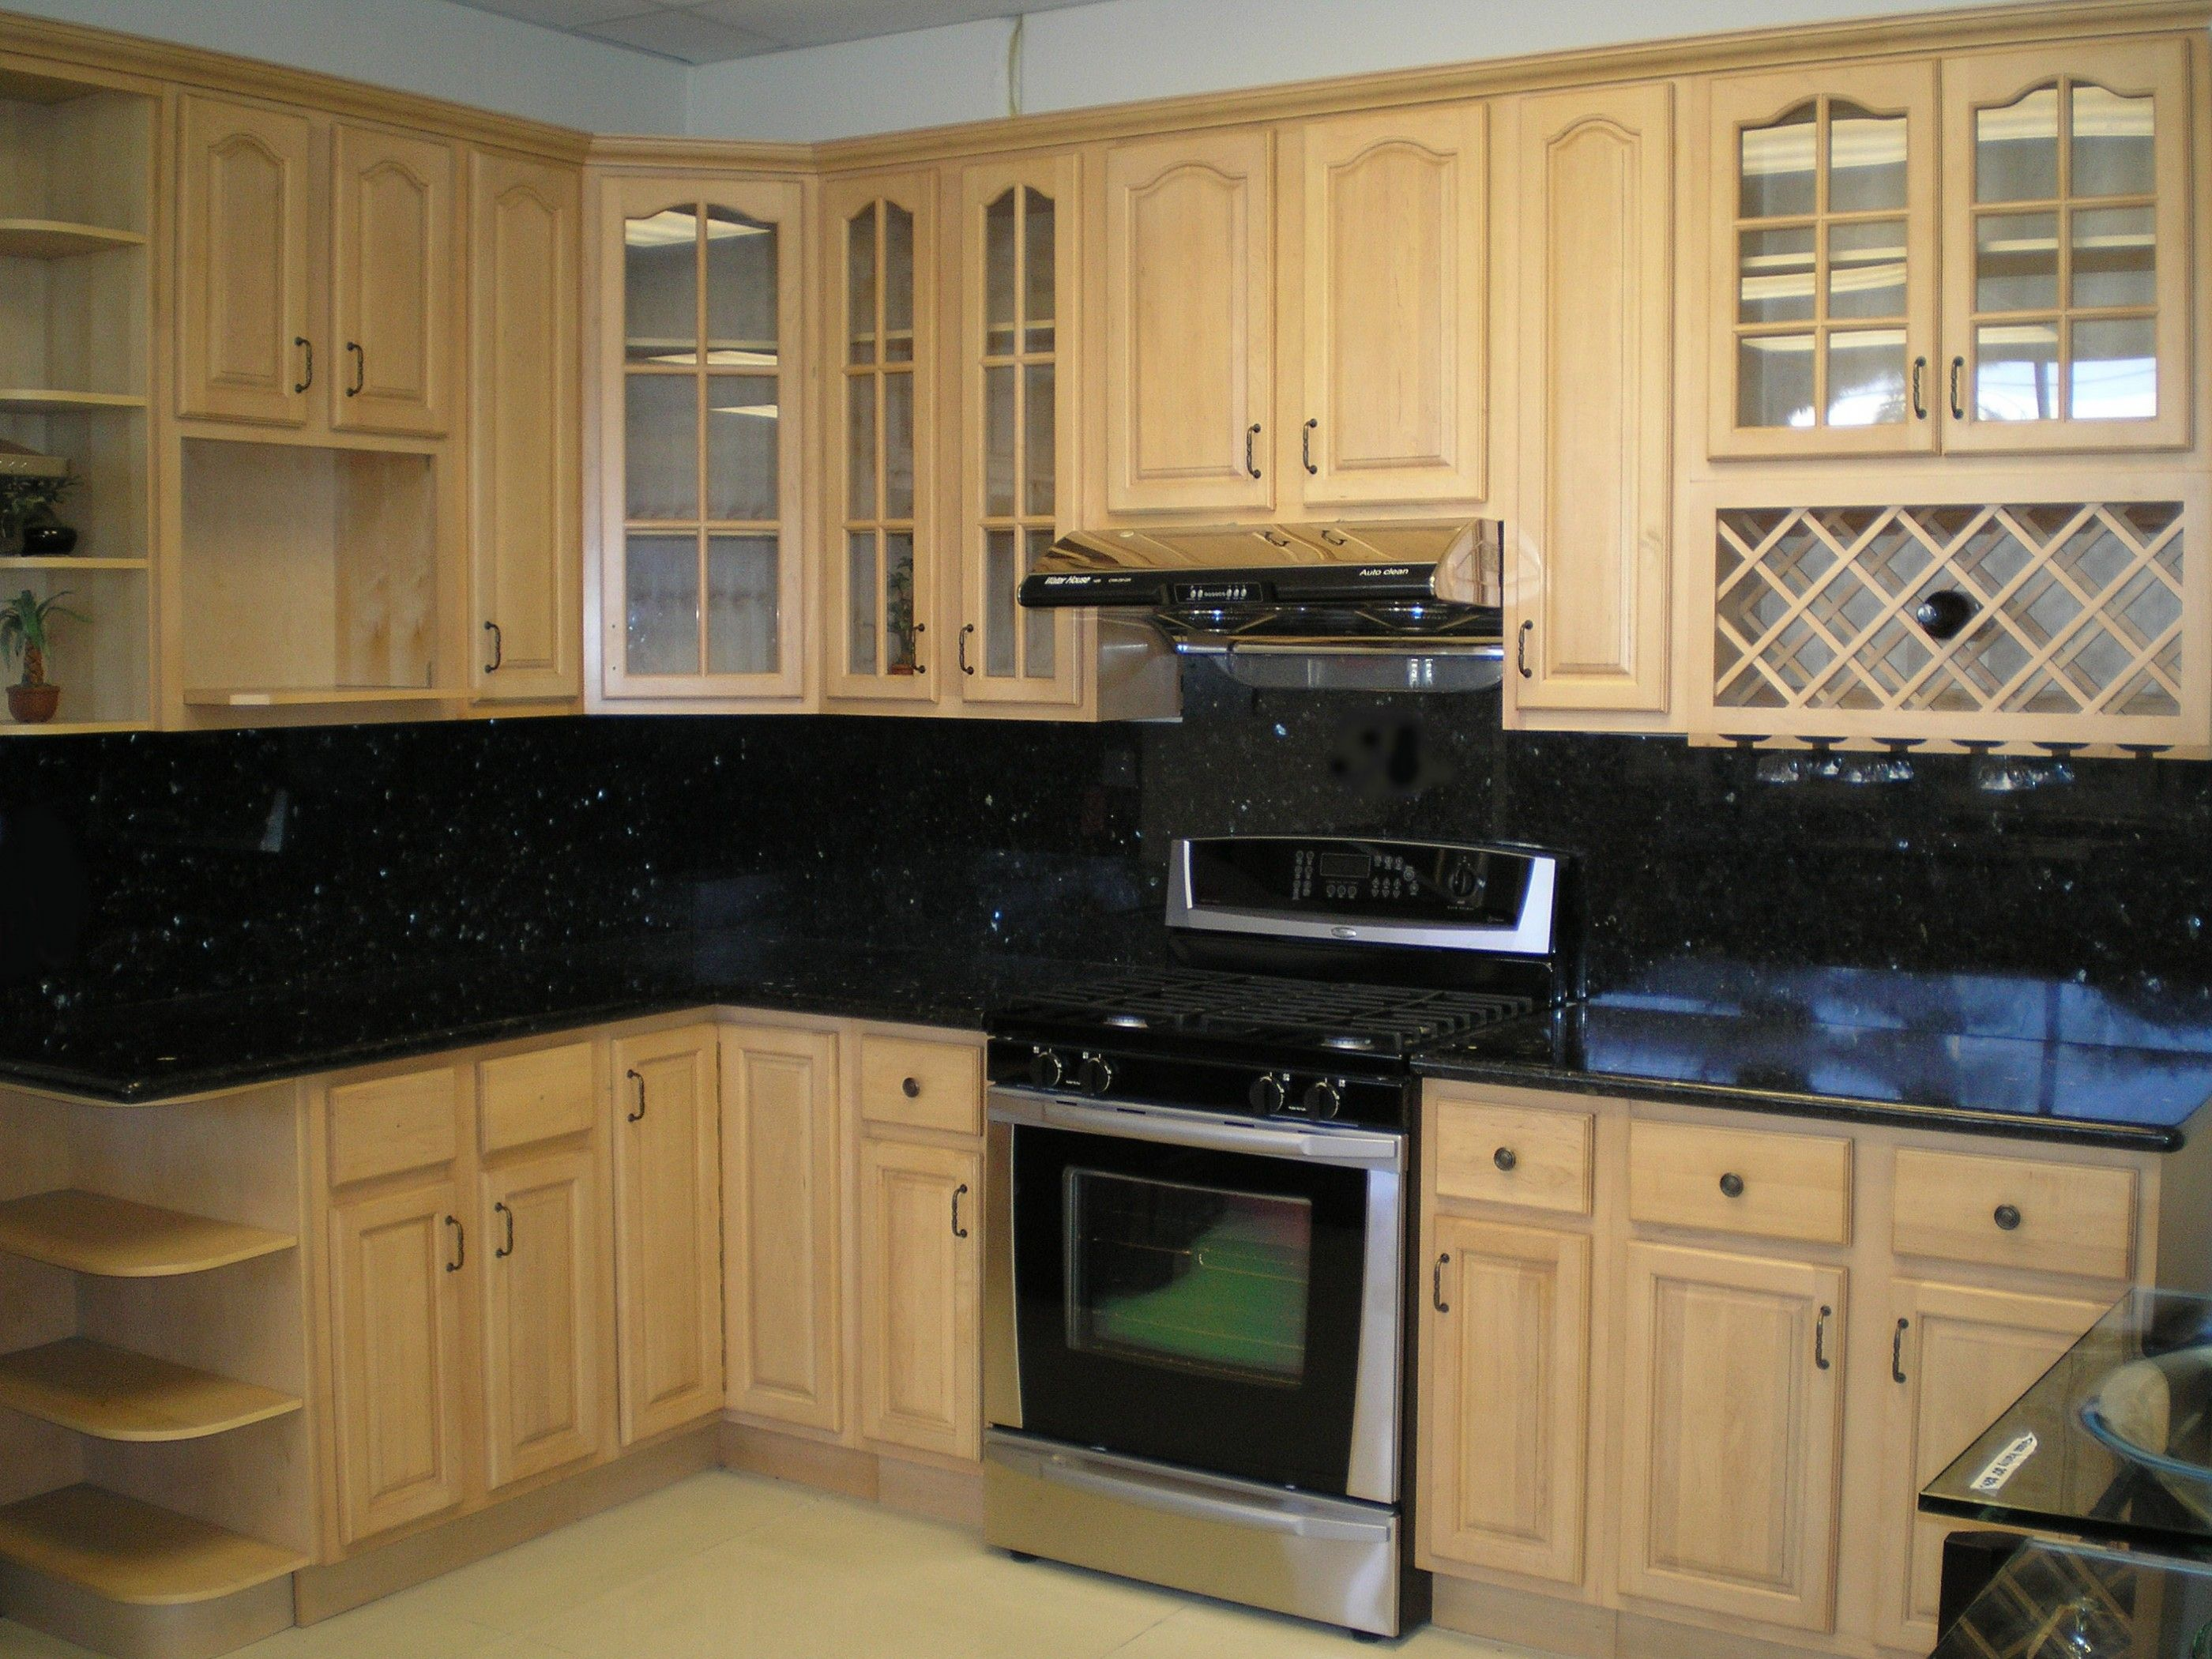 black kitchen wall cabinets with glass doors | kitchen cabinets